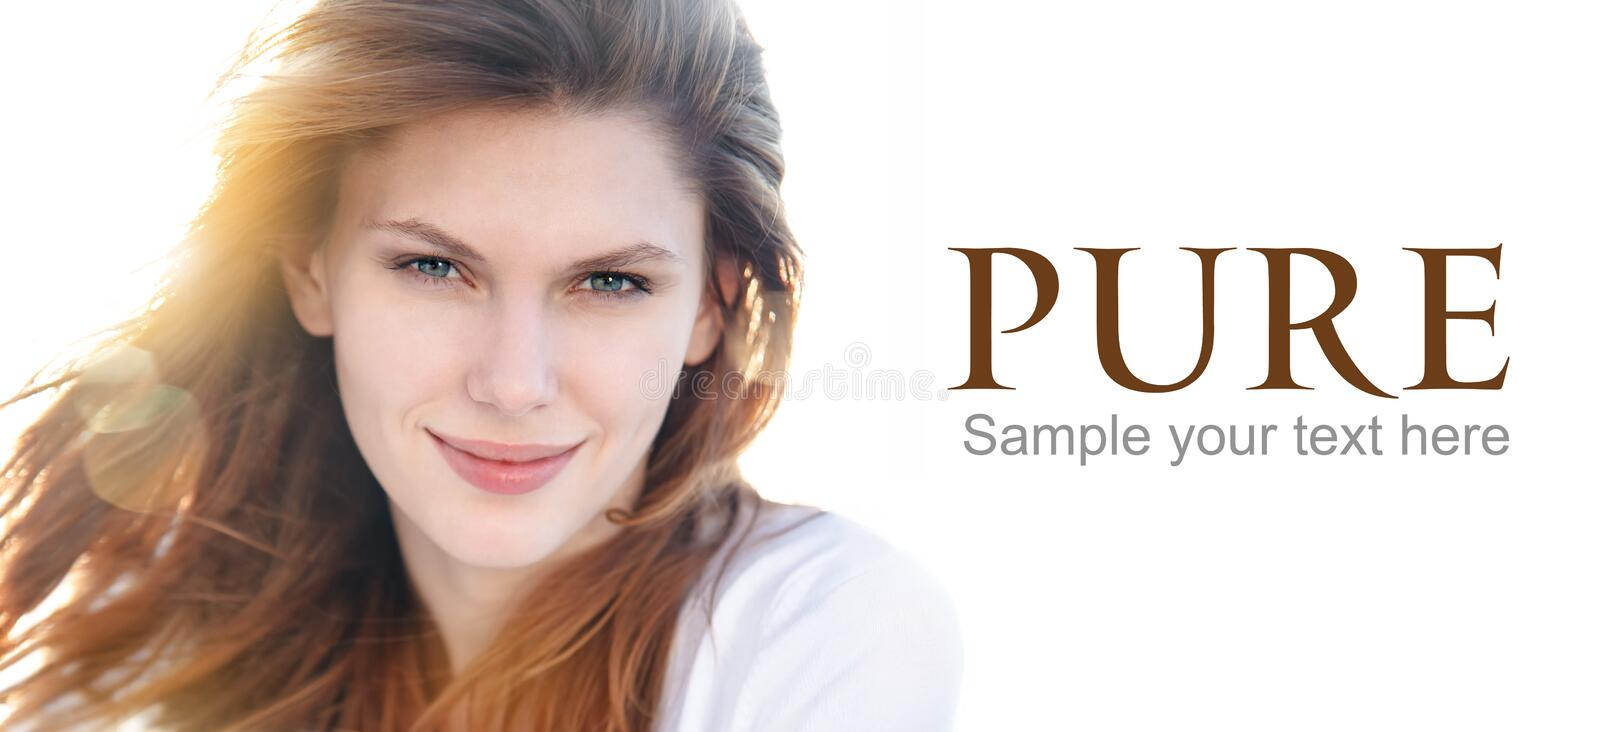 Delightful young woman on the cover. Portrait of magnificent brunette smiling girl - isolated on white background copy space stock photos